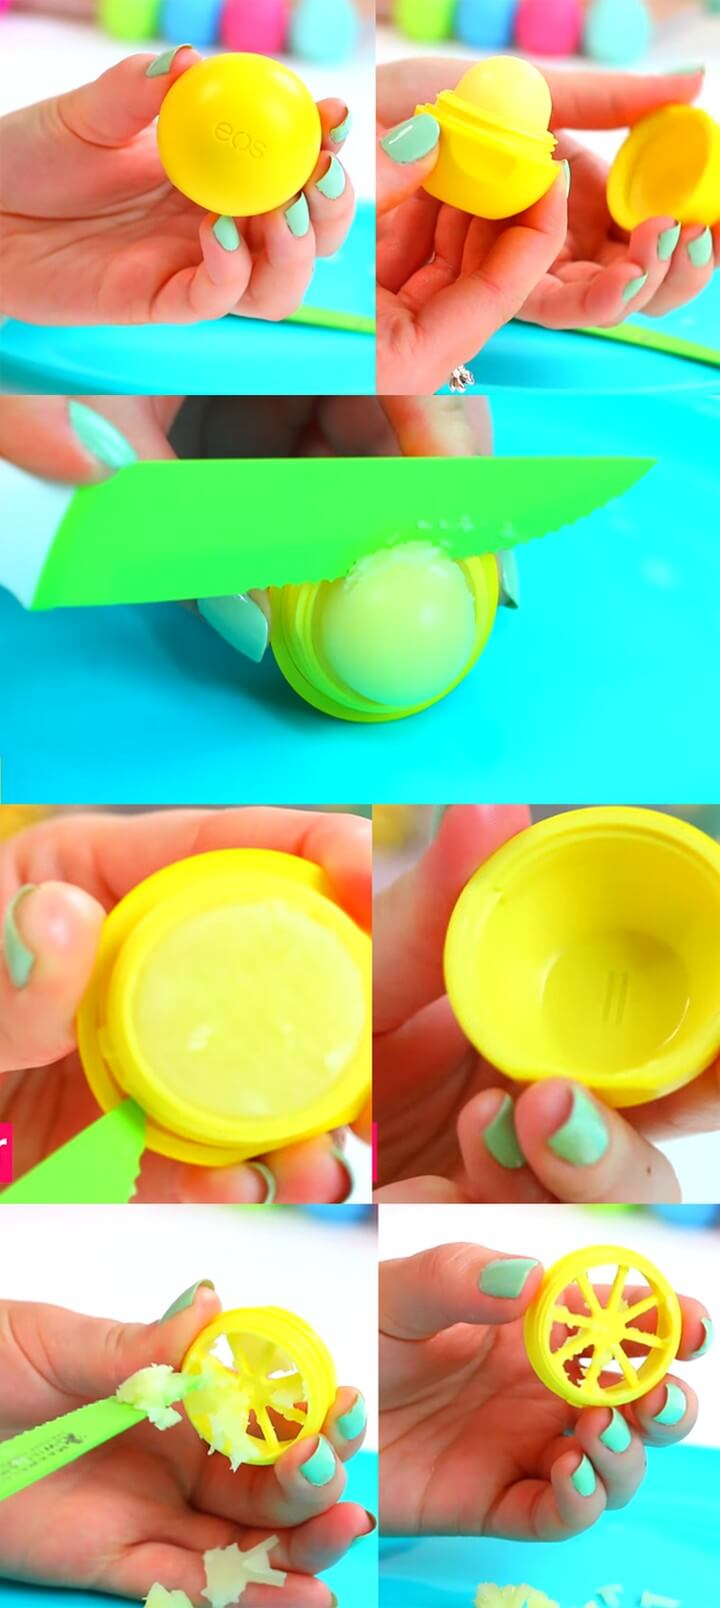 Cupcake EOS Tutorial DIY, diy project, diy projects, diy project wood, diy project at home, diy project for home, diy project home, diy projects for home, diy project with pallets, diy projects pallets, diy projector screen, diy projector, diy project for kids, diy projects for kids, diy project easy, diy projects easy, diy art project, diy project for home decor, diy project home decor, diy project electronics, diy project to sell, diy projects for teens, diy backyard project, diy projects for bedroom, diy project ideas for home, diy project garden, diy project ideas, diy project for couples, diy project youtube, diy project arduino, what is diy project, diy elevator project, diy project kits for guys, diy kitchen project, diy soldering project kits, diy projector without magnifying glass, diy project for school, diy project box, diy project kits, diy project book, diy volcano project, diy project gifts, diy knitting project bag, diy project for boyfriend, diy project table, diy project plans, diy project websites, diy project app, diy project meaning, diy craft and project, diy project design, diy project videos, diy project bag, diy electronic project kits, diy project enclosure, diy project planner, diy projects using pallets, diy project.com, diy project list, diy project life cards, diy project case, diy projects using wine corks, diy projects using bamboo, diy project box enclosure, diy project board, diy project management, diy project guitar, diy project stack, diy project ideas for school, diy project tutorials, diy project supplies, diy razer project valerie, diy project image on wall, diy project design software, diy projects using old doors, diy project gift ideas, diy project to make money, diy garden project ideas, the diy project, diy project stack shimmer noel village, diy project raspberry pi, diy project calculator for dummies, diy project calculator, diy projects using old tires, diy project blogs, diy project ideas for guys, diy glacier project, diy project 18v bosch battery adapter, diy project kits for adults, diy atom project, diy project life, diy project for students, diy art project ideas, 10 diy projects with drinking straws, your diy project supplies, diy project valerie, your diy project, diy project ideas electronics, diy project for toddlers, diy sos next project, diy project 2019, diy ziggurat project, diy project picnic table plans, diy project malaysia, diy project ebike, what does diy project mean, diy wind vane project, is siding a diy project, tonefiend diy project 1, diy project homemade, diy projects handmade, diy project recycled, diy 2x4 project, diy project management tools, diy project with motor, your diy project ventures, diy project rocks, diy wood project classes near me, diy project living room, diy project sungai besi, diy project to do, diy nas project, diy project help, diy project with mason jars, how to diy project, 18650 diy project, diy project management templates, diy project quotes, diy project with yarn, diy project memes, diy project with old jeans, diy project junkie, diy yearbook project, diy project home depot, diy project garage shelving, diy kitchen project ideas, diy project raised bed, diy xbox 360 project, diy project amplifier, diy project design app, diy project outdoor, diy for school project, diy projects made from wood pallets, how to plan a diy project, diy project lax upm, is drywall a diy project, diy project que es, diy project reflection, diy project hacks, diy project in arduino, diy project to make and sell, diy project tracker, diy projects michaels, diy yarn project, diy project zorgo mask, diy project bunnings, diy project to do at home, diy project electric motor, diy dac project, diy yard projects ideas, diy project new, diy project with glass bottles, diy project drone, diy projects using plywood, diy project junkie facebook, diy project electrical, diy projects useful, diy project pinterest, diy project ideas wood, diy camper van project, diy 3d project, diy arduino quadcopter project, diy project materials, diy project for teenager, diy projects during covid, diy project with scrap wood, diy project builder, diy project animal crossing, diy project crafts, diy project amazon, quarantine diy project ideas, diy project classes, life is a diy project, diy project packs, diy project grass, is laminate flooring a diy project, is replacing windows a diy project, diy jewelry project, tonefiend diy club project 1, diy project subscription box, diy project 2020, diy project planning app, diy project definition, diy project life filler cards, diy project ladybugs, diy project hashtags, diy project junkie lester prairie, diy project blueprints, diy project using plastic bottles, what diy project should i do, diy projects made from wood, diy project sets, diy project ideas for adults, diy kpop project, diy project with wine corks, diy project mc2 notebook,